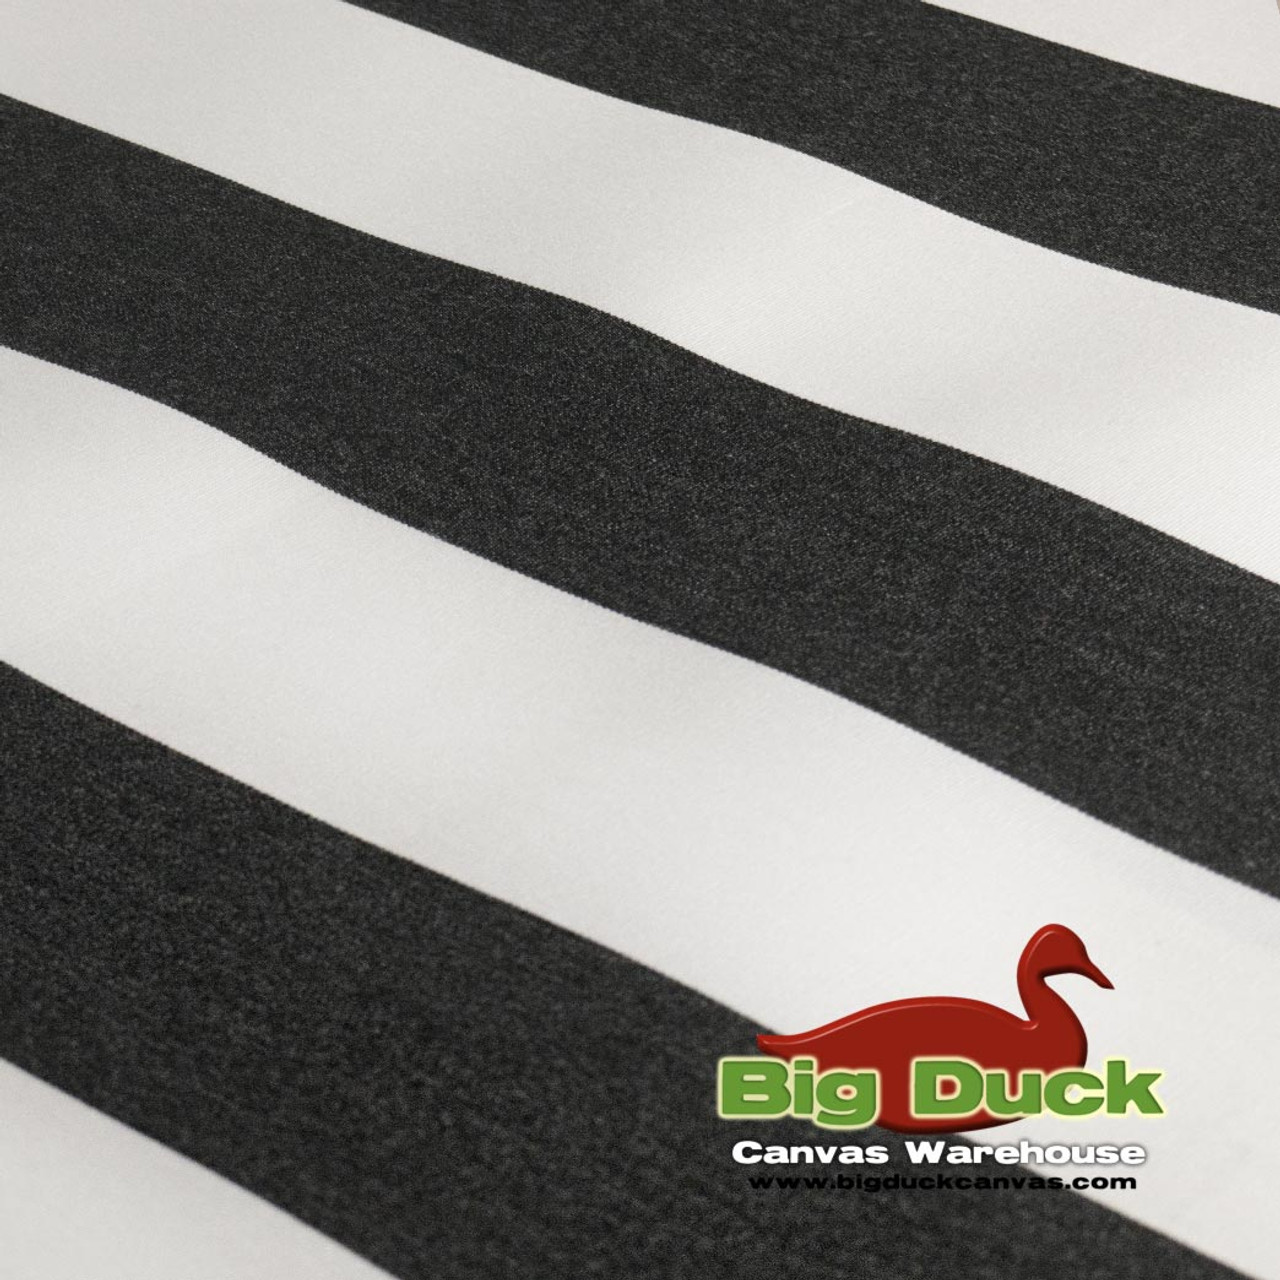 Outdoor Fabric For Awnings/Marine Use Black/White Striped SeaDuck 10YR  Warranty